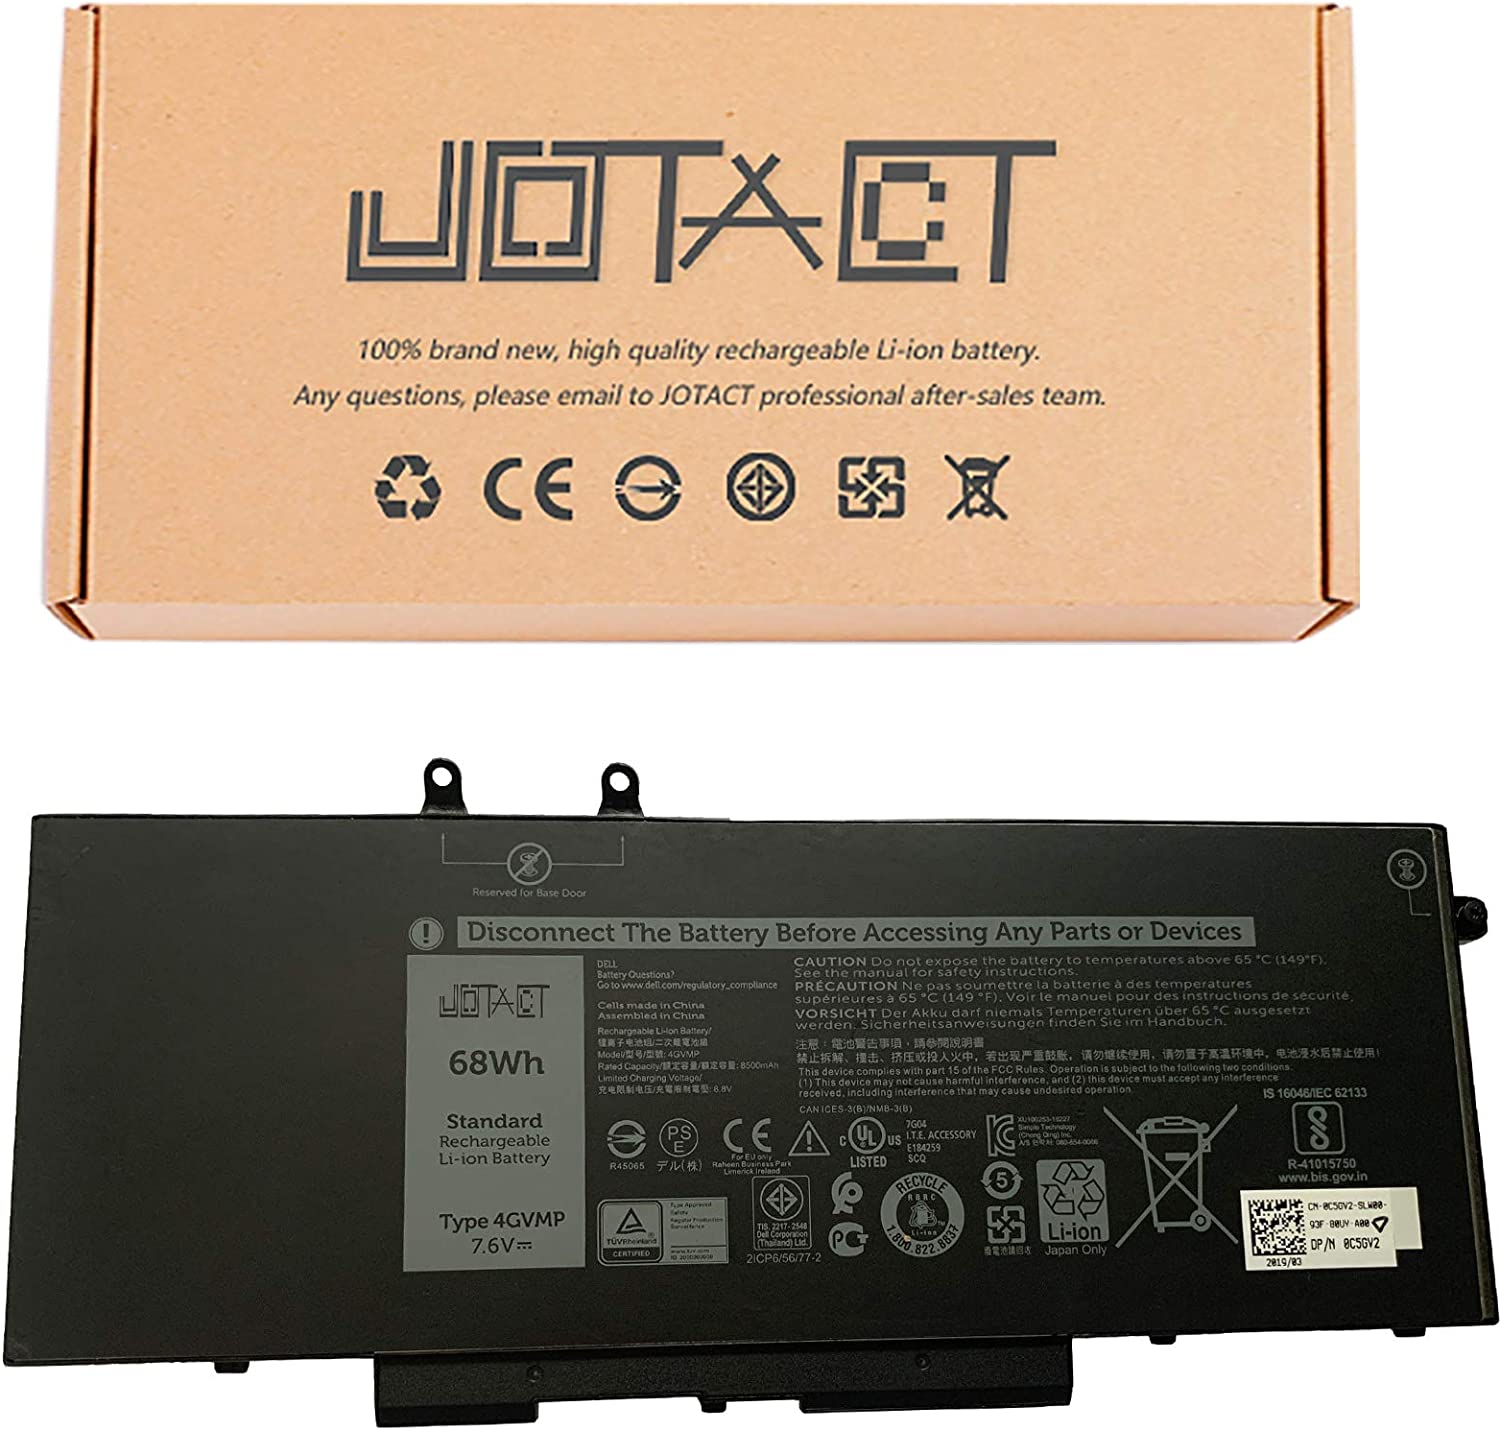 JOTACT 4GVMP Laptop Battery Replacement for Dell Latitude 5400 E5400 5410 E5410 Precision 3540 M3540 Inspiron 7590 7591 7791 2-in-1 Series Notebook 1V1XF R8D7N 9JRYT 09JRYT 7.6V 68Wh/8500mAh 6 Cell